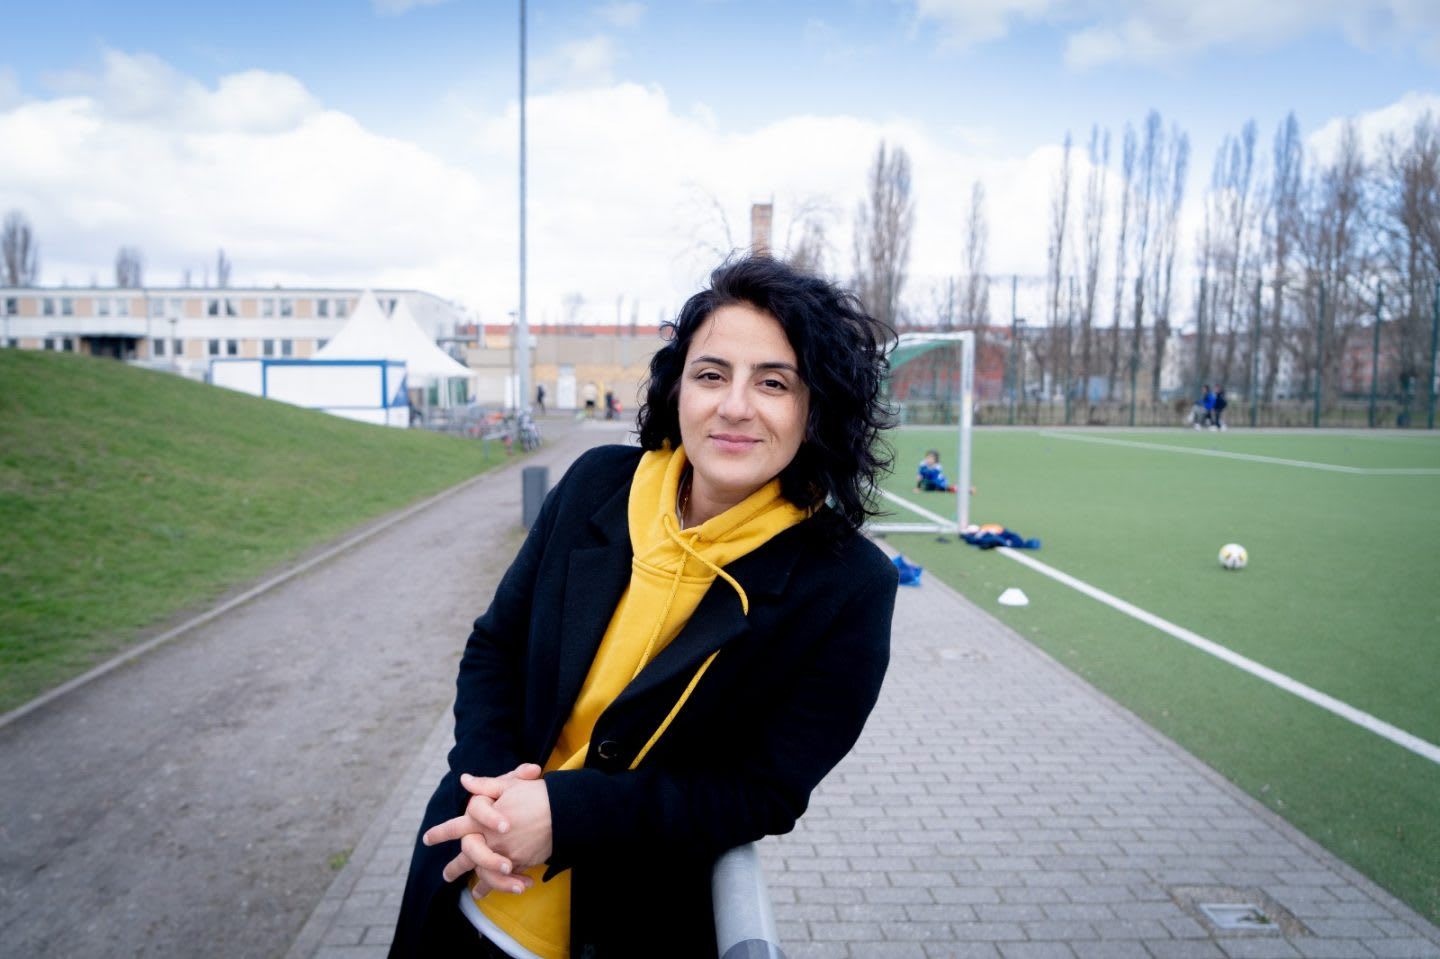 Tugba standing in front of a football field. football, community, girls,, playing football